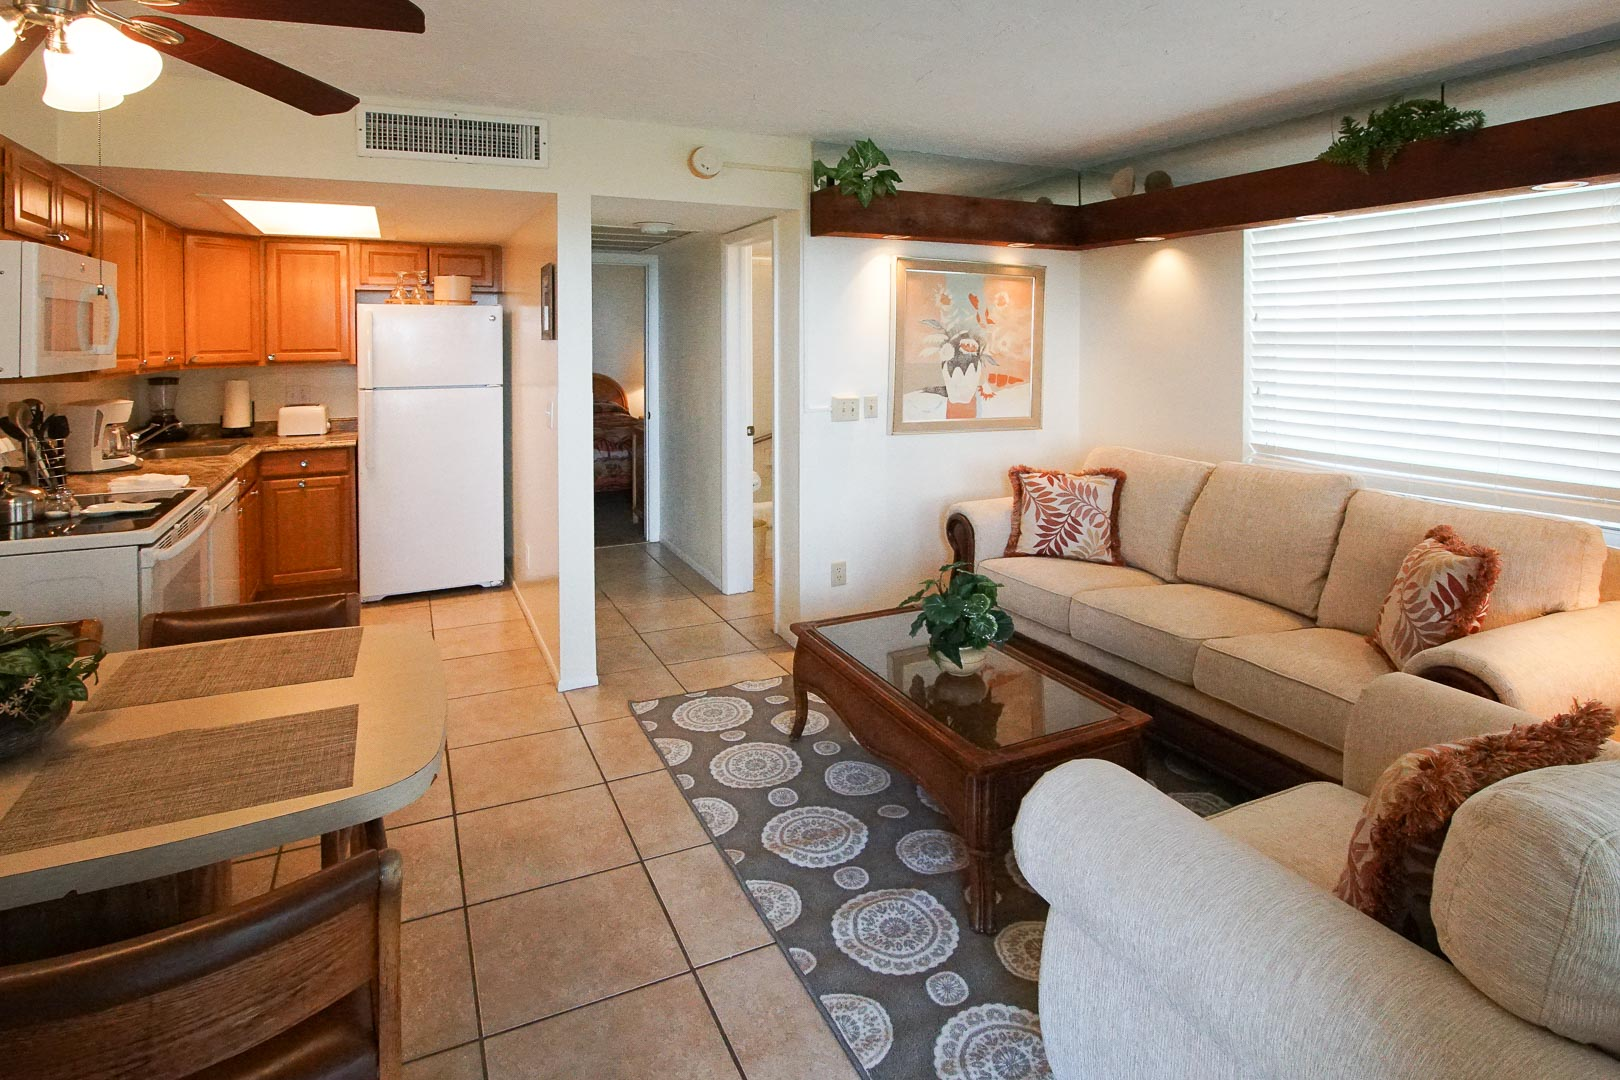 A spacious living room area at VRI's Sand Dune Shores in Florida.